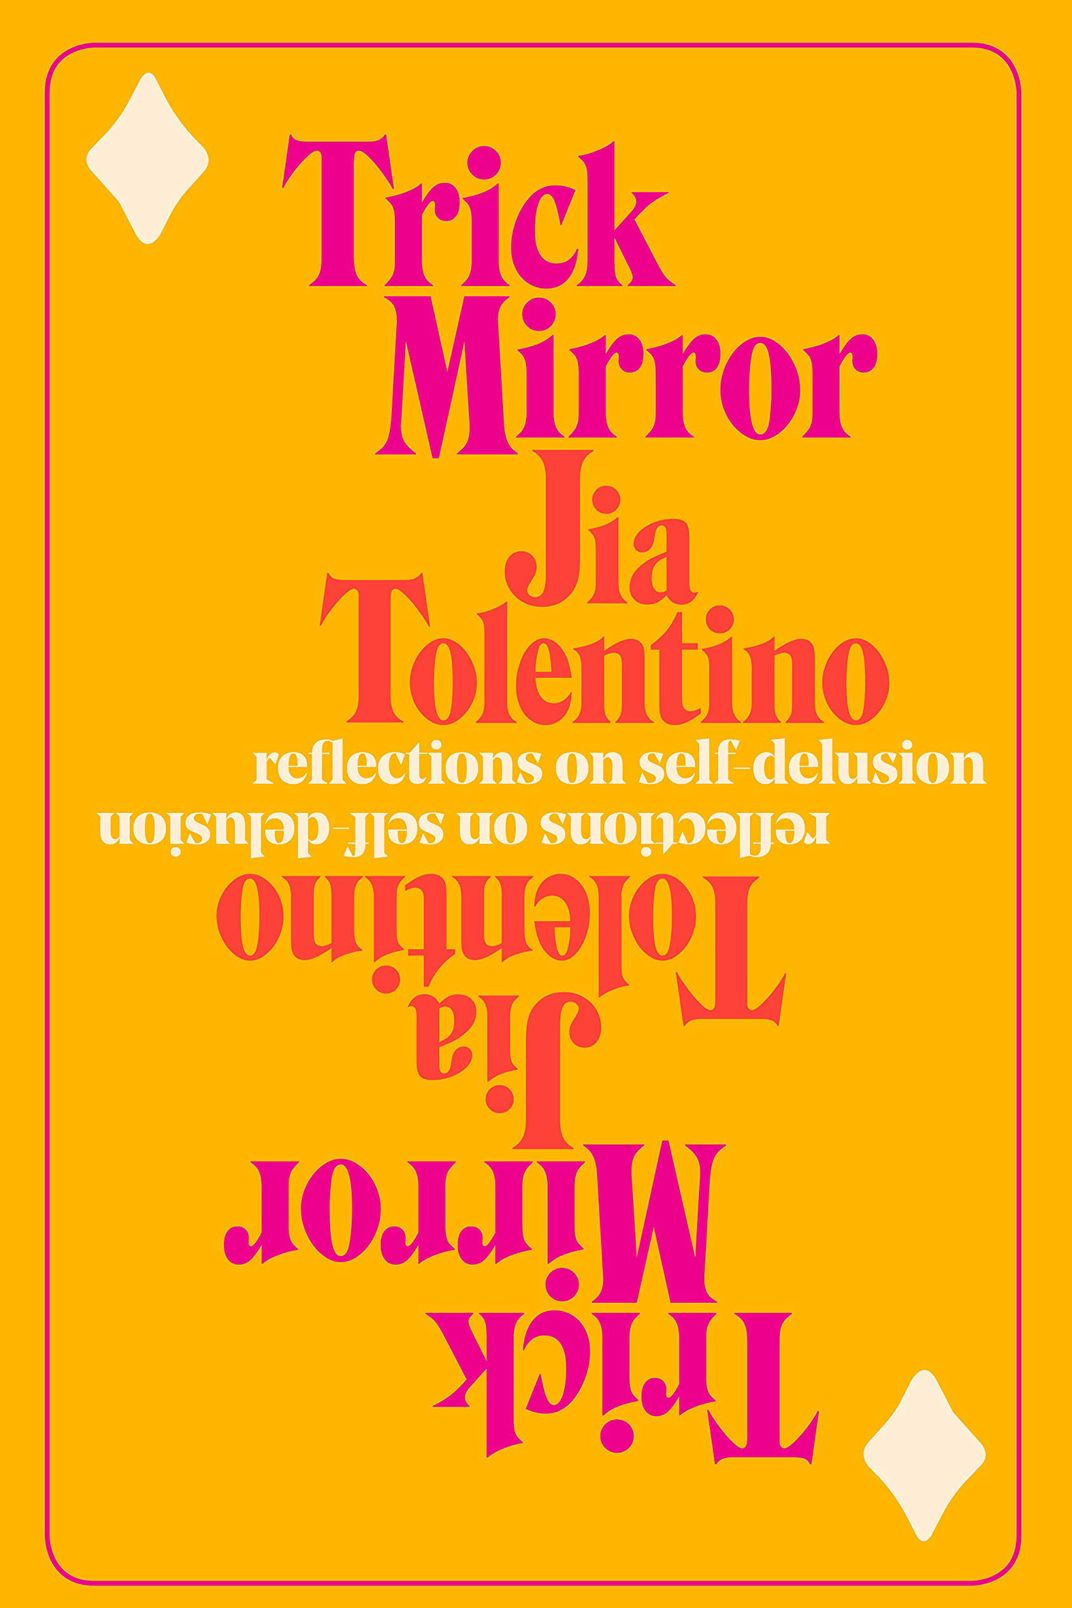 Trick Mirror: Reflections on Self-Delusion, by Jia Tolentino (Random House, August 6)